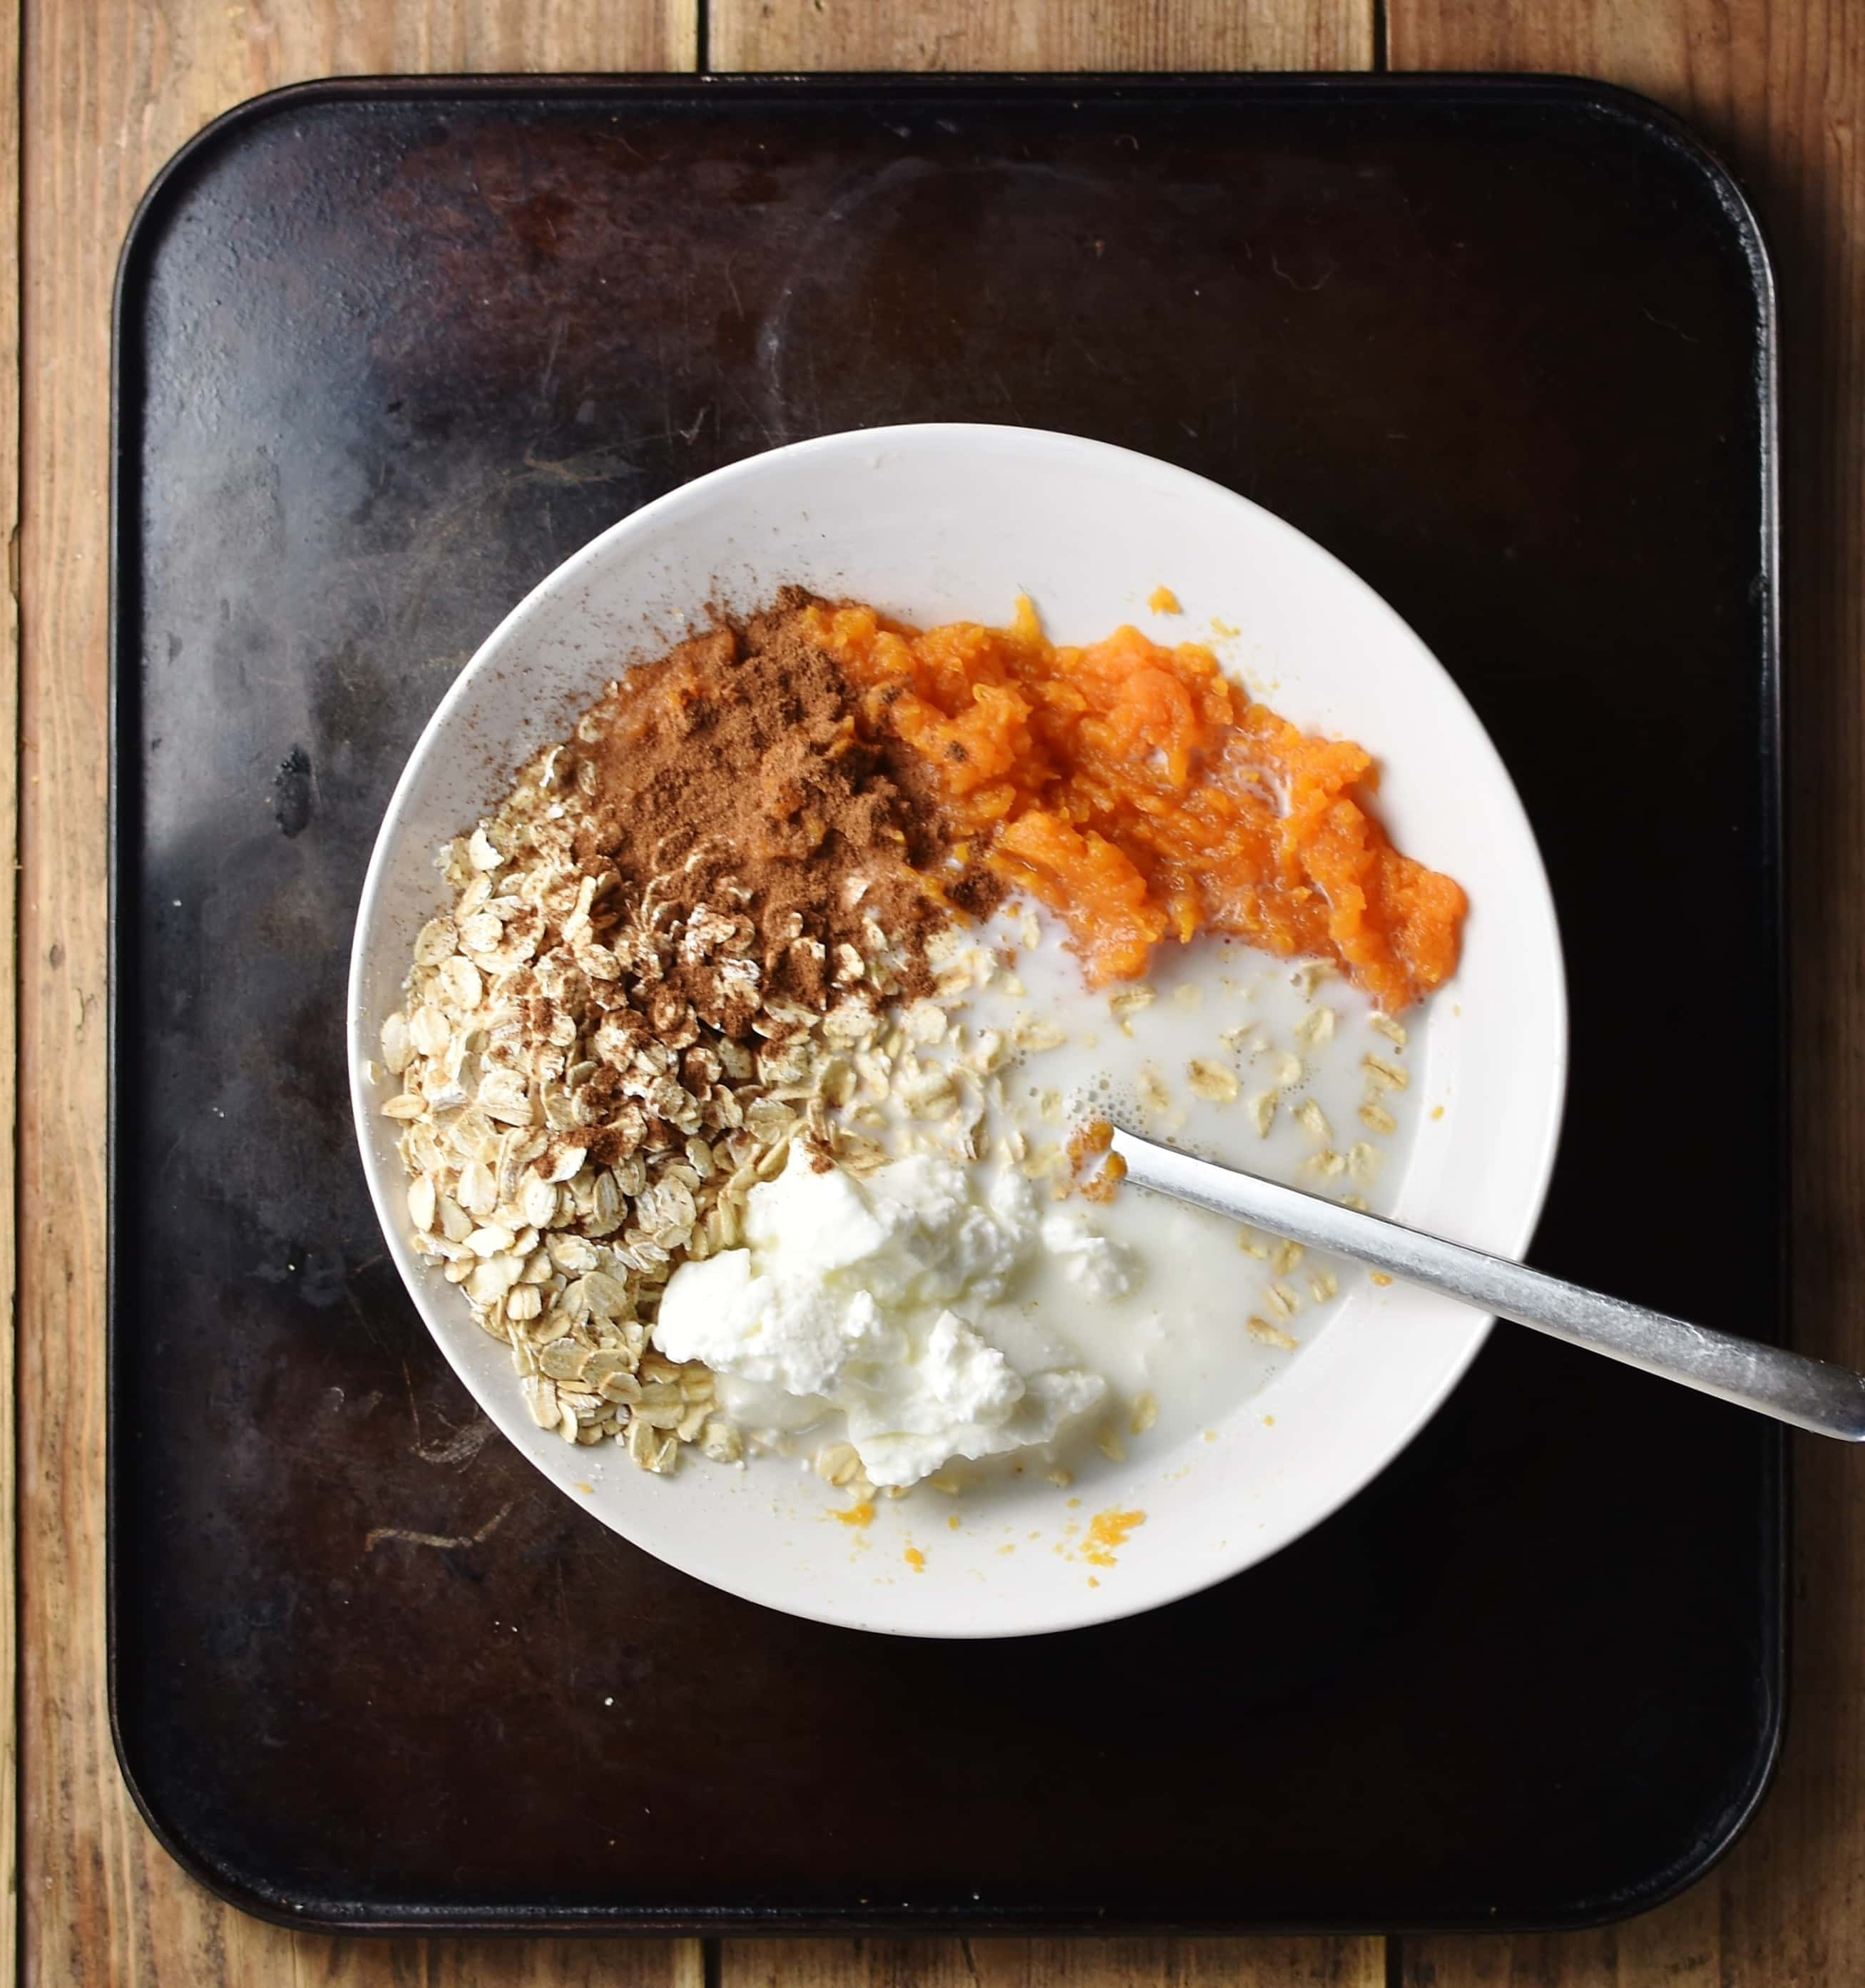 Top down view of oats, milk, spice, yogurt and mashed sweet potato in white bowl with spoon.